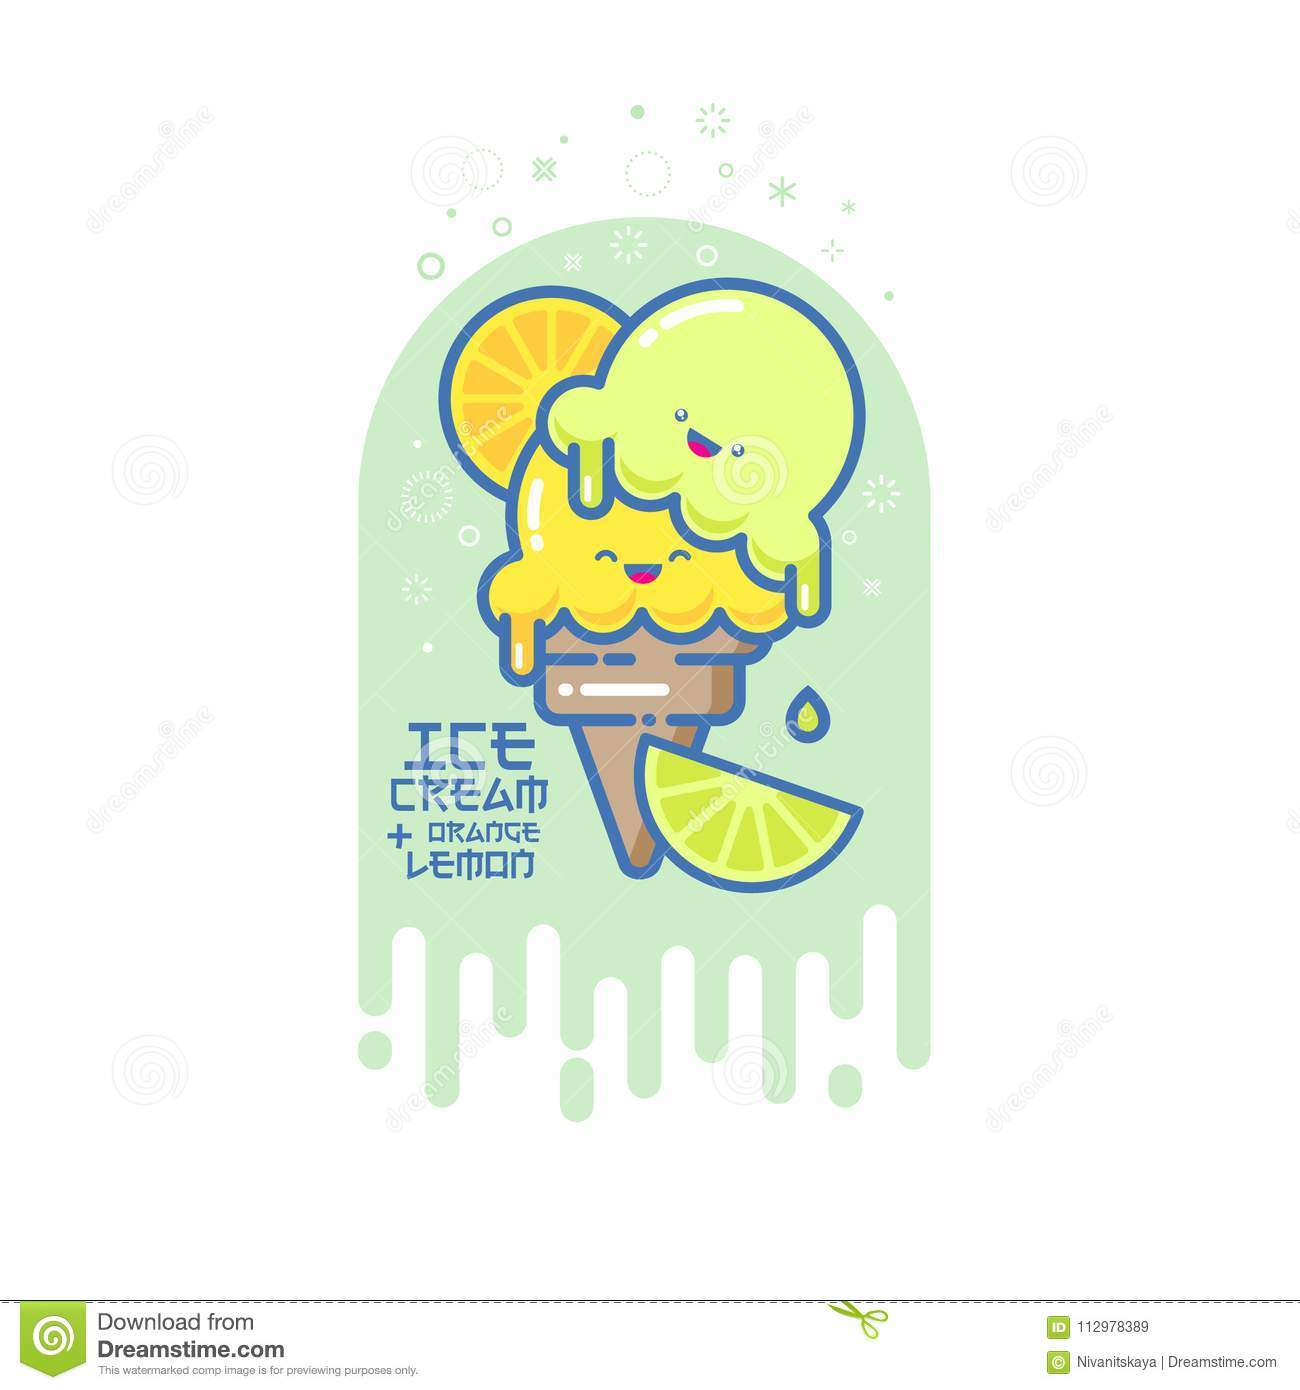 Japanese style illustration. Colorful ice cream with oranges and limes on a cone. Japanese style picture.